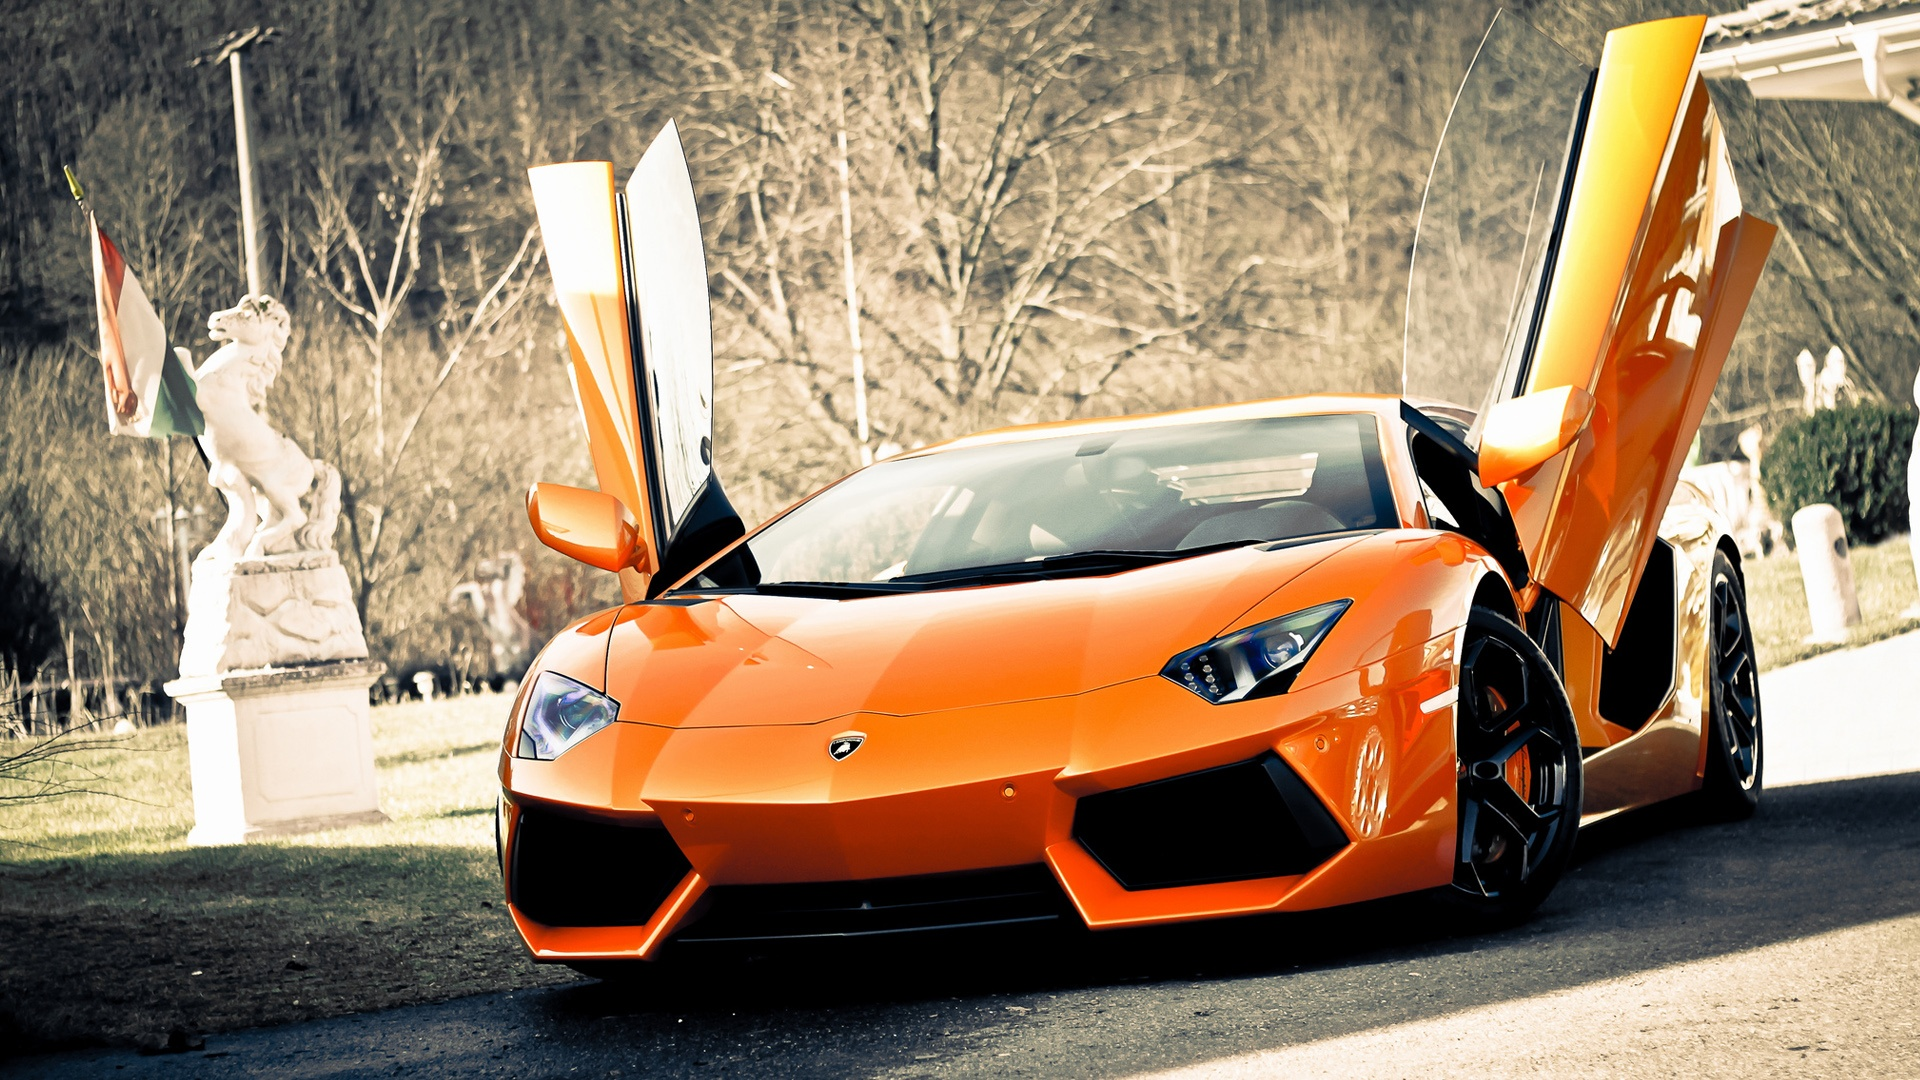 You can download Lamborghini Wallpaper For Computer in your computer 1920x1080